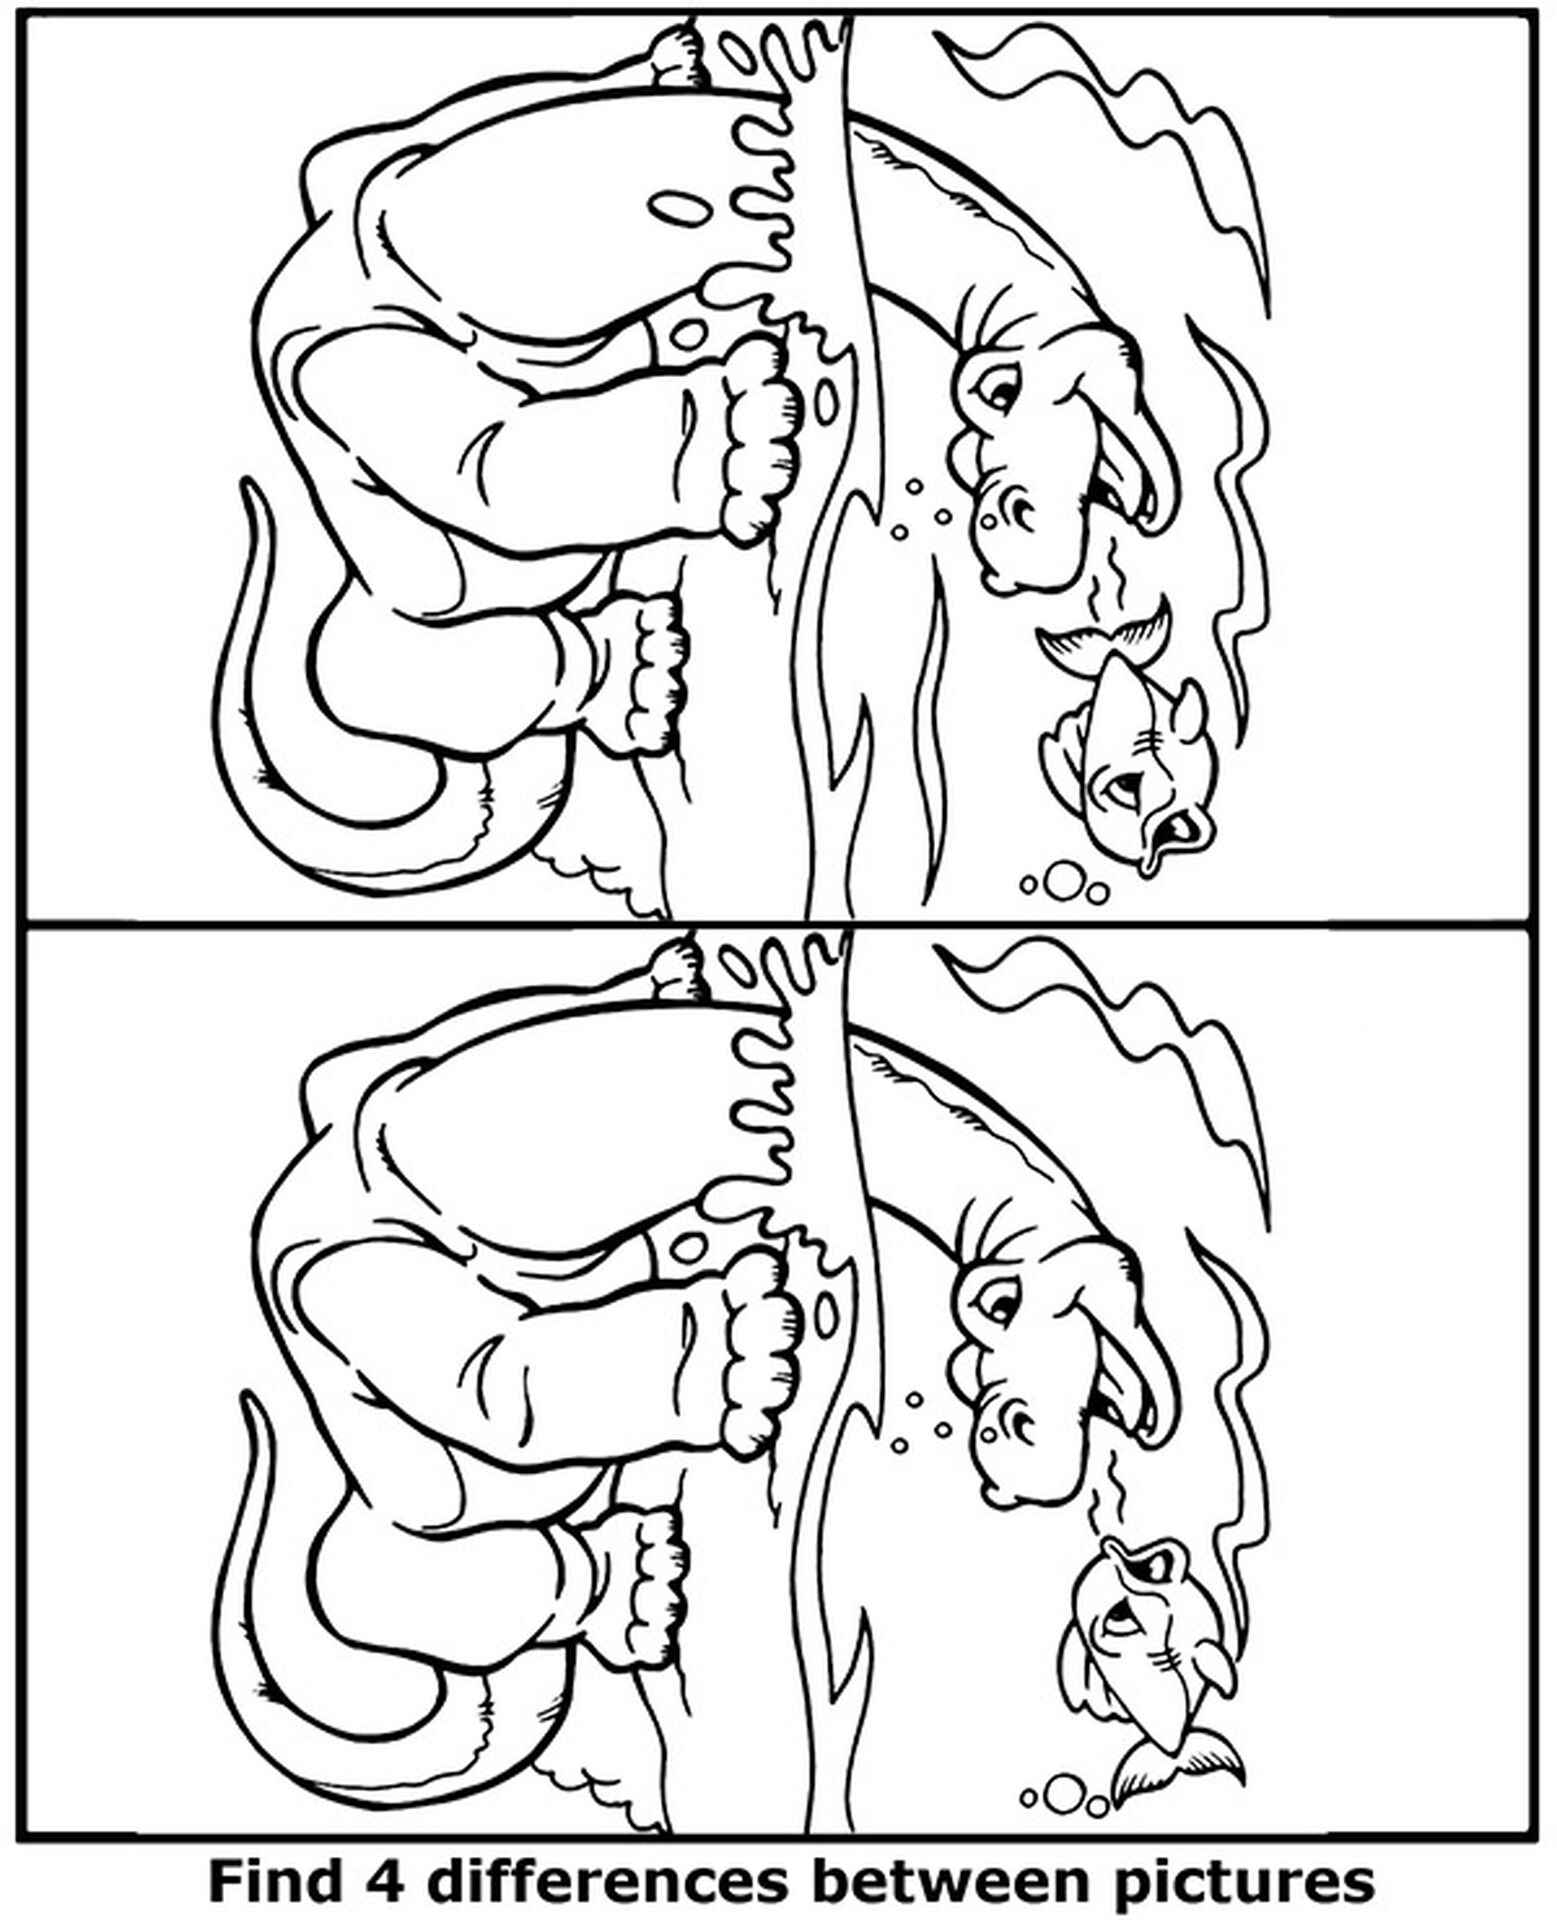 Spot 4 Differences Dinosaur Coloring Page